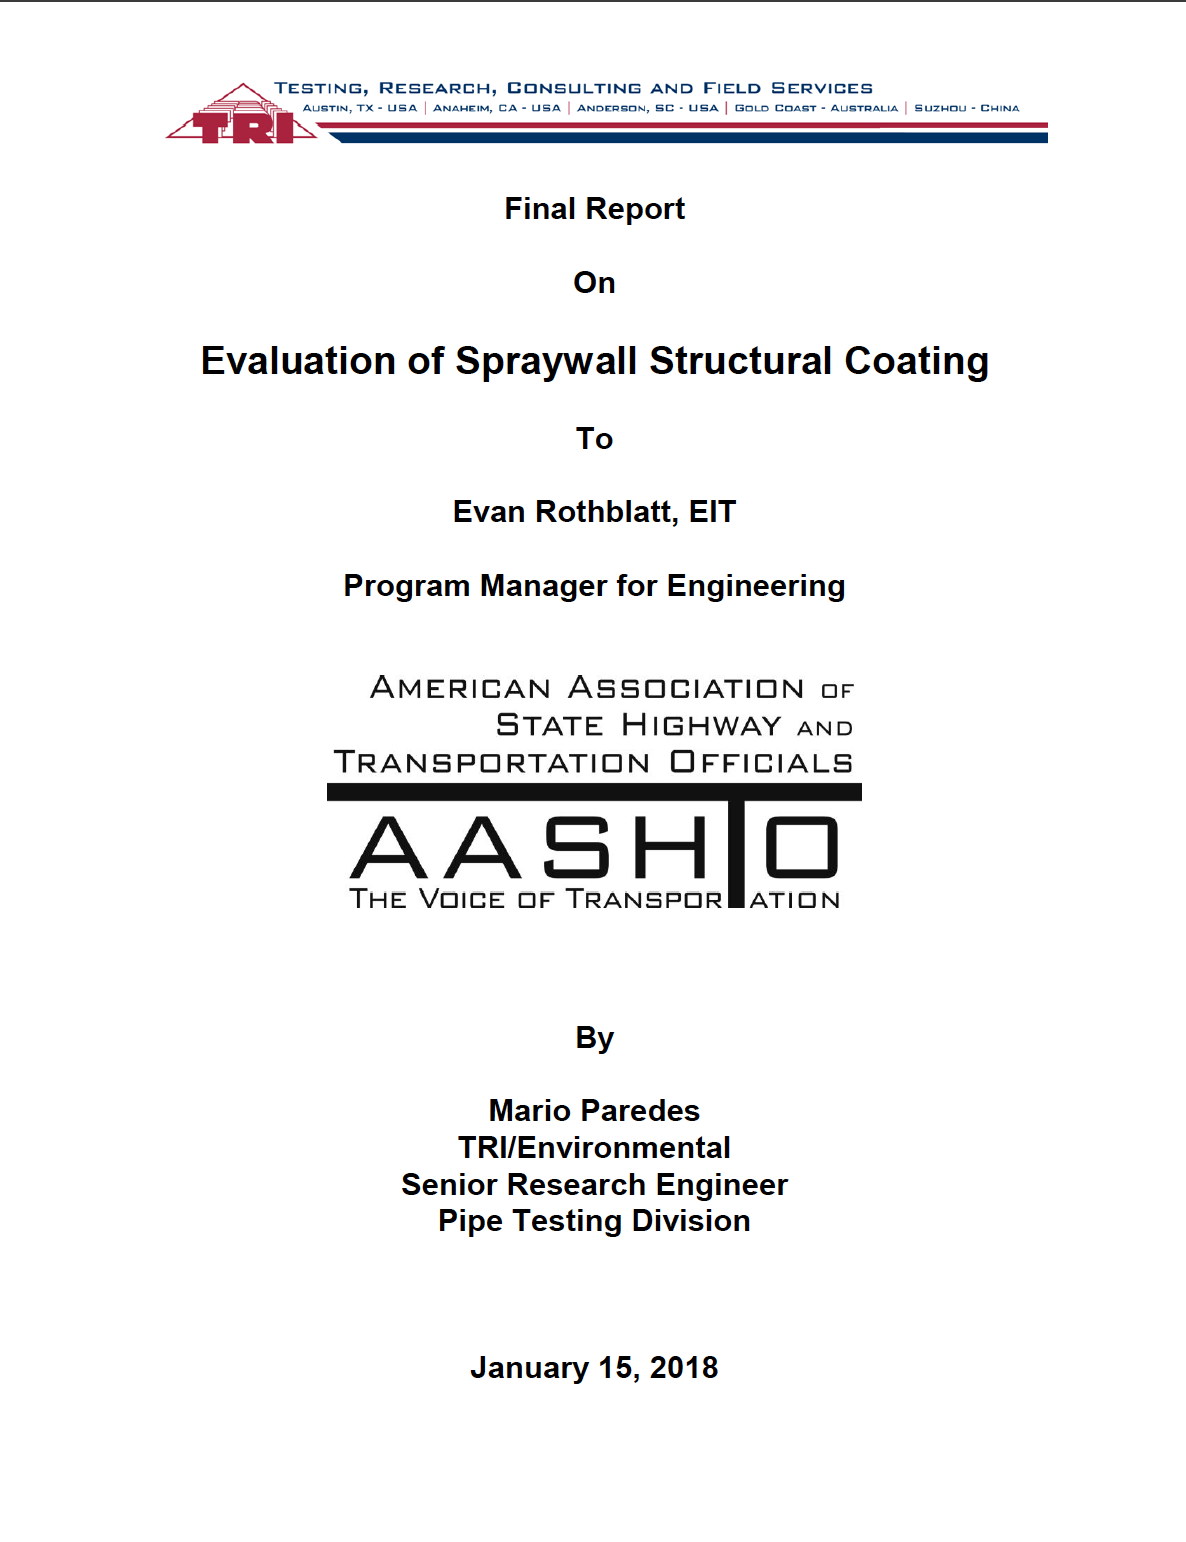 Sprayroq-AASHTO-EVALUATION